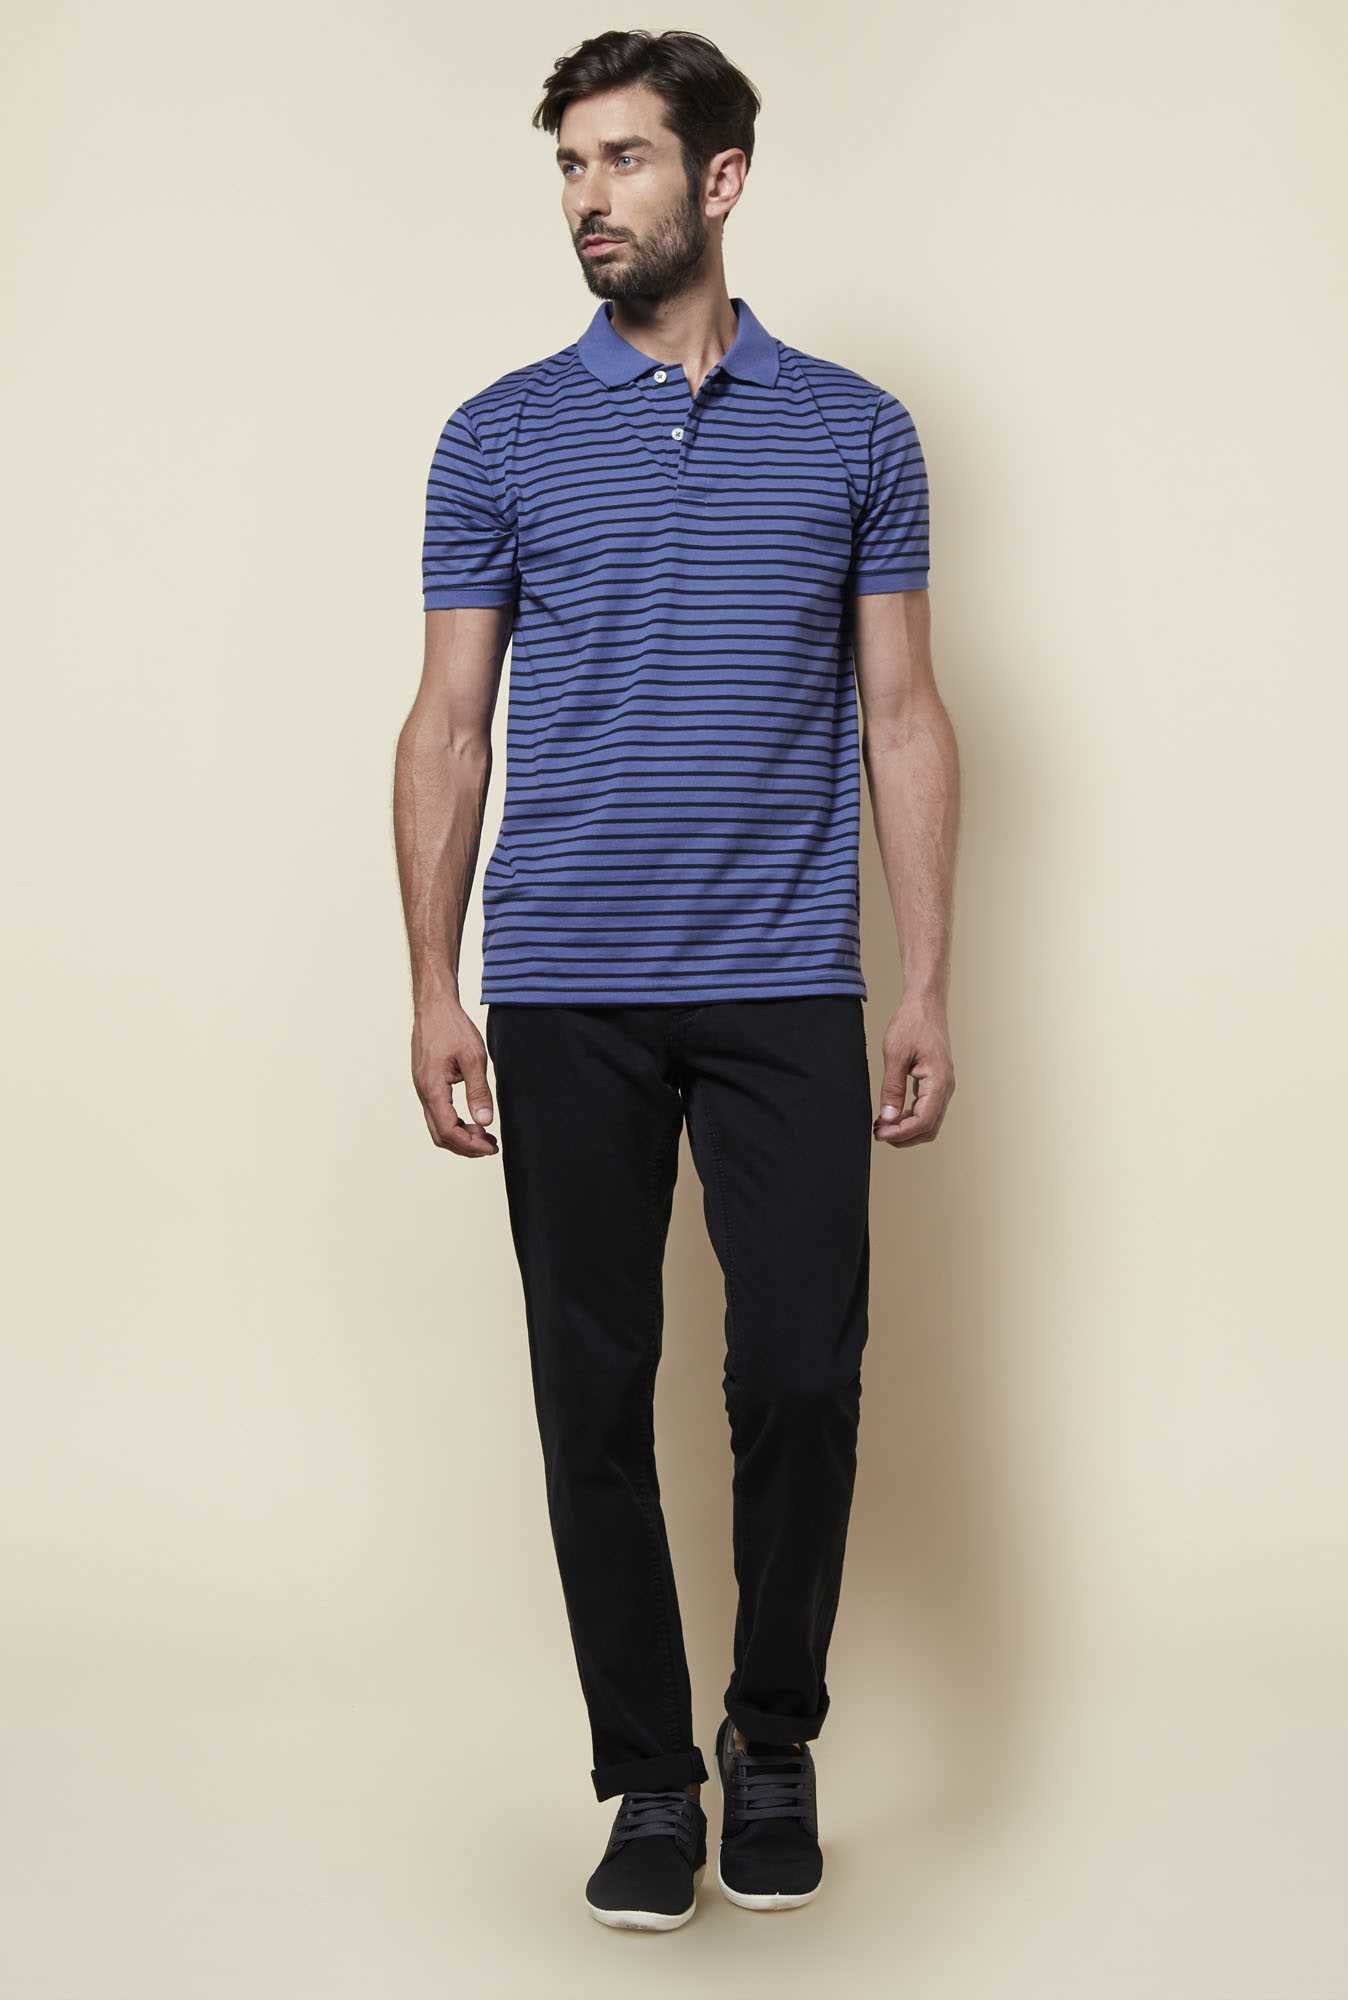 Zudio Indigo Polo T Shirt